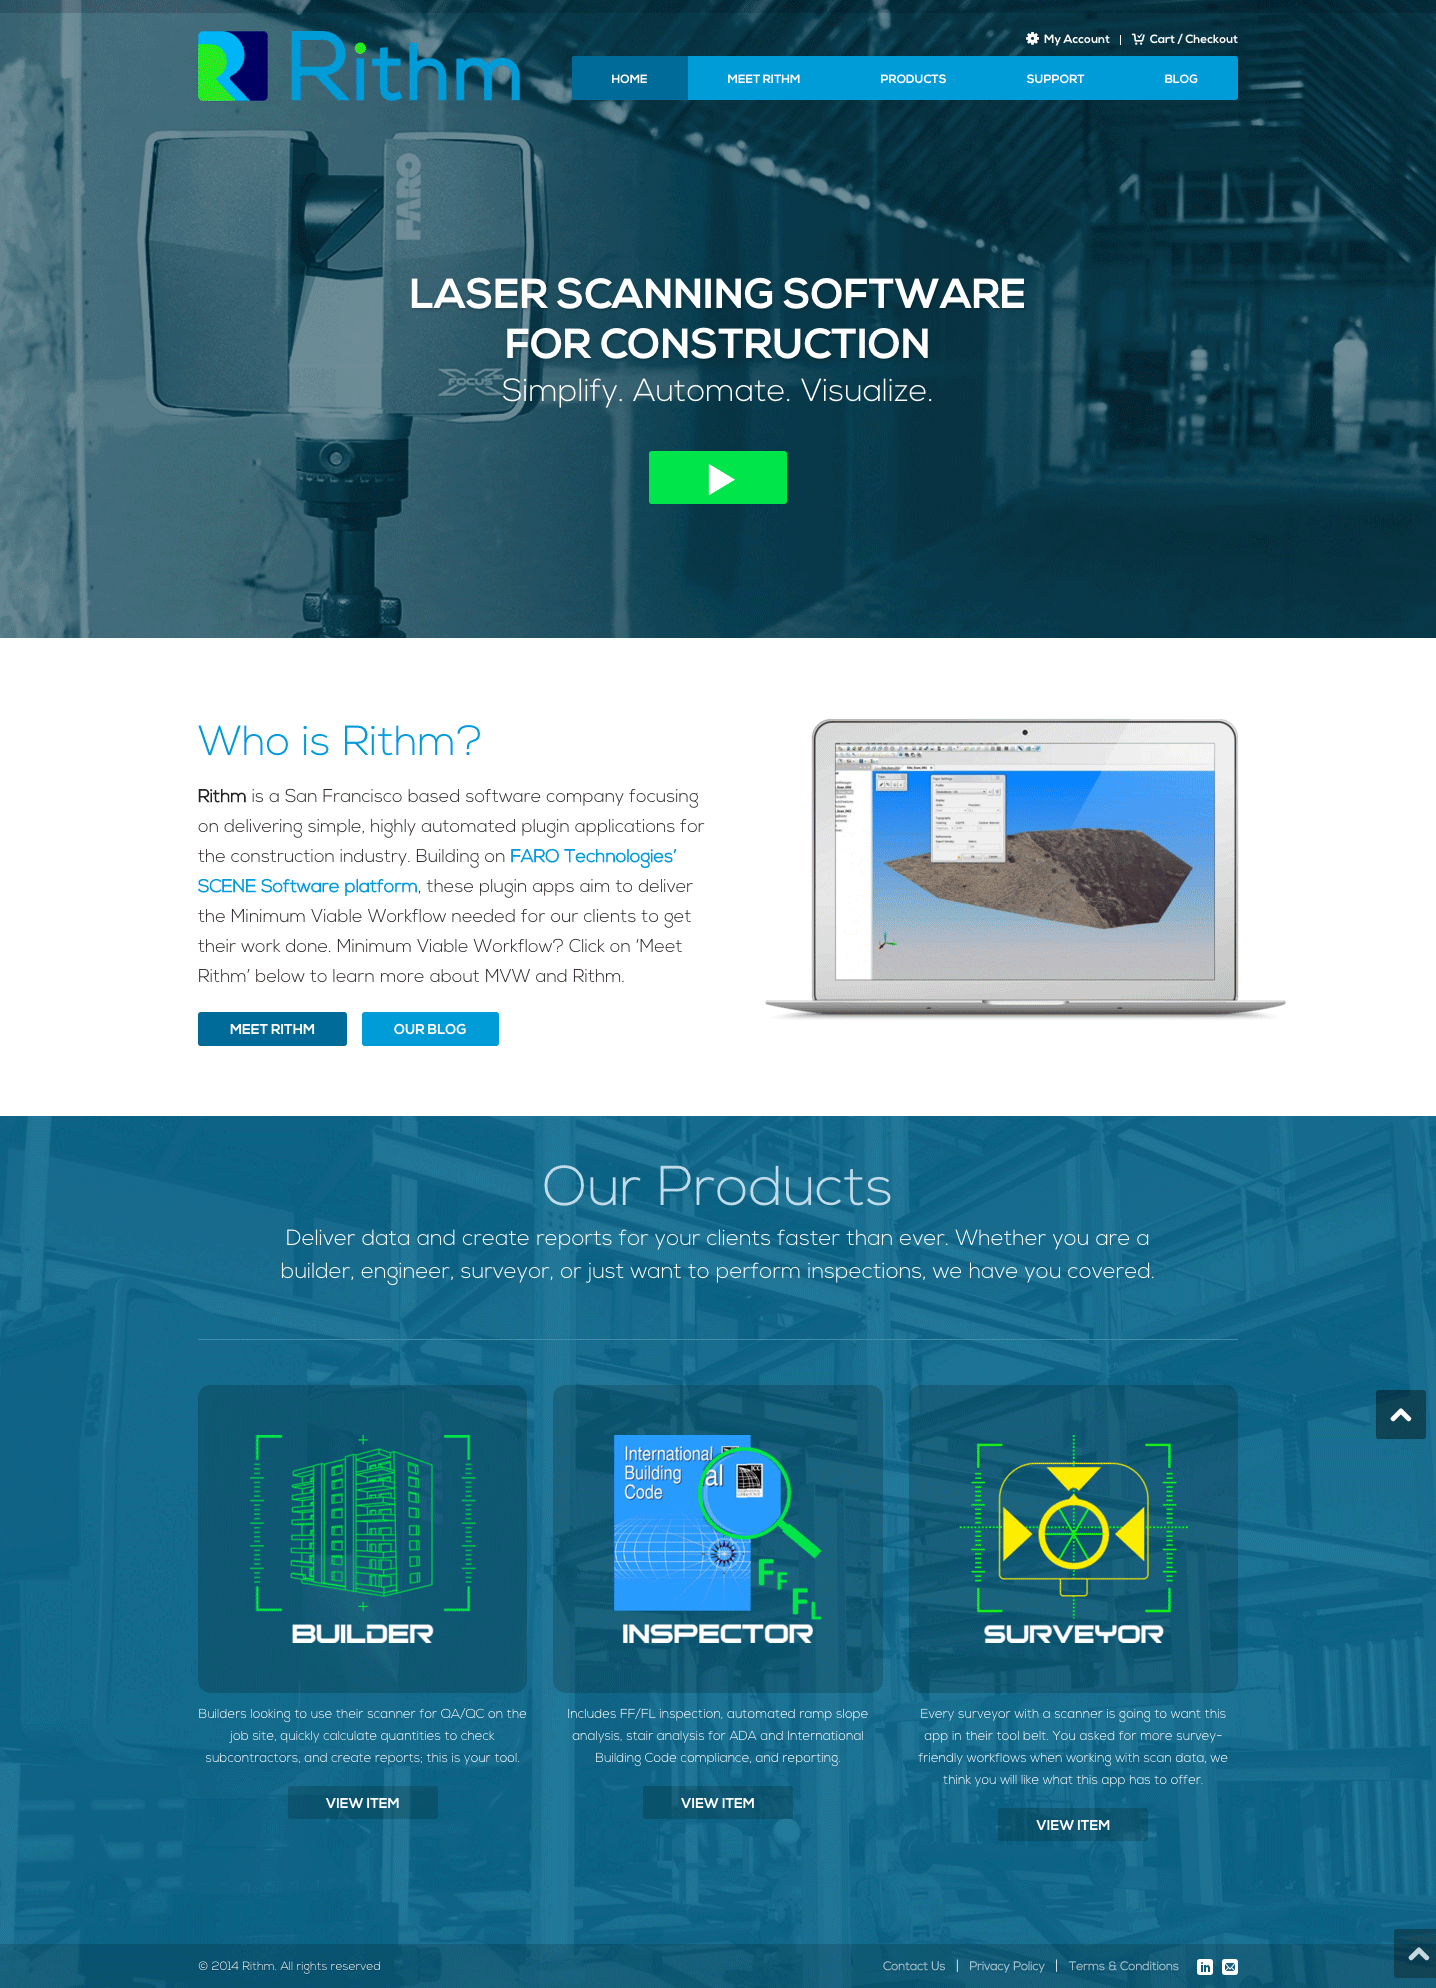 WordPress ecommerce design